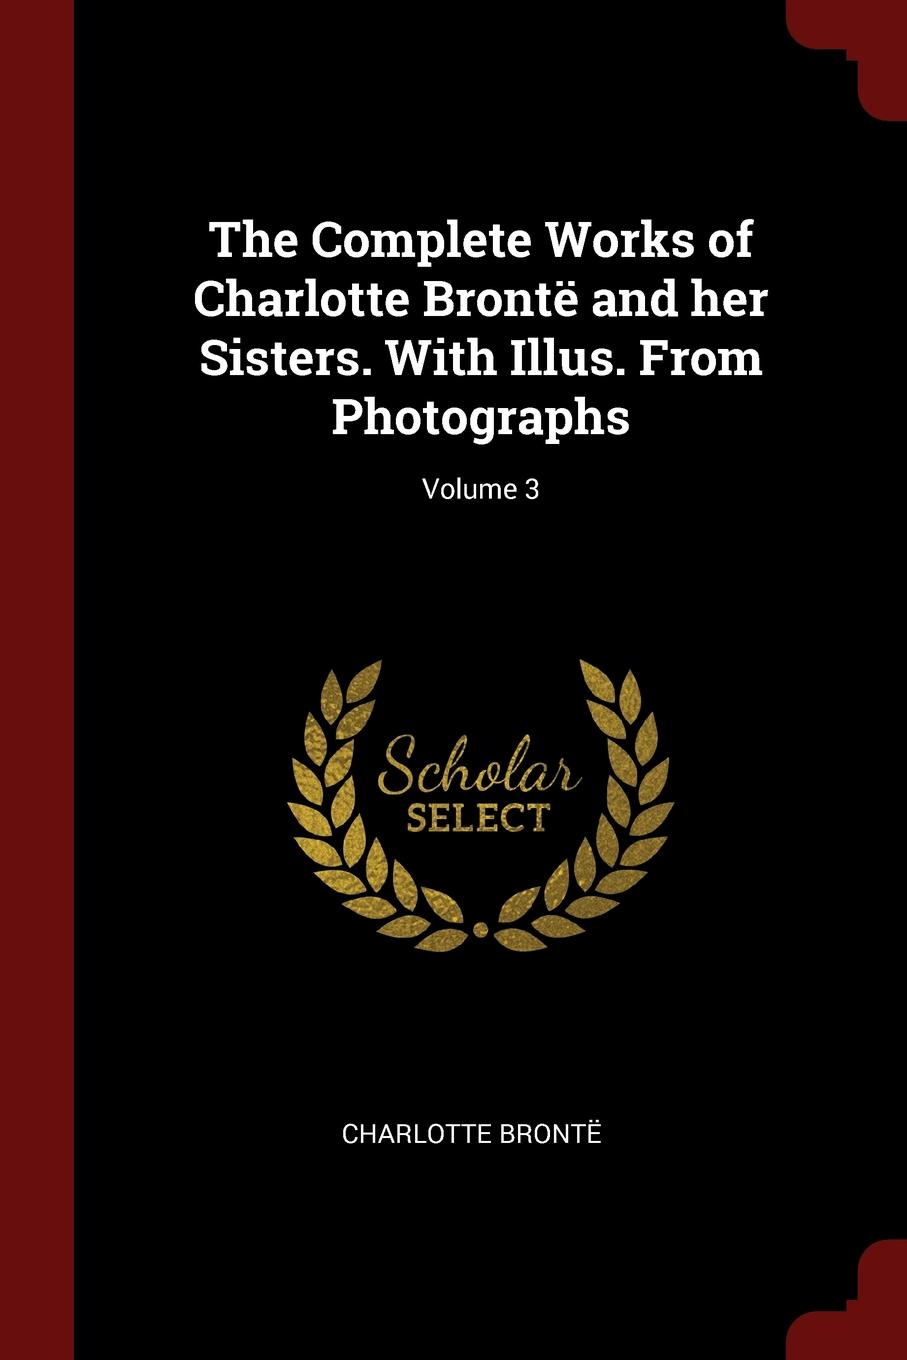 Charlotte Brontë The Complete Works of Charlotte Bronte and her Sisters. With Illus. From Photographs; Volume 3